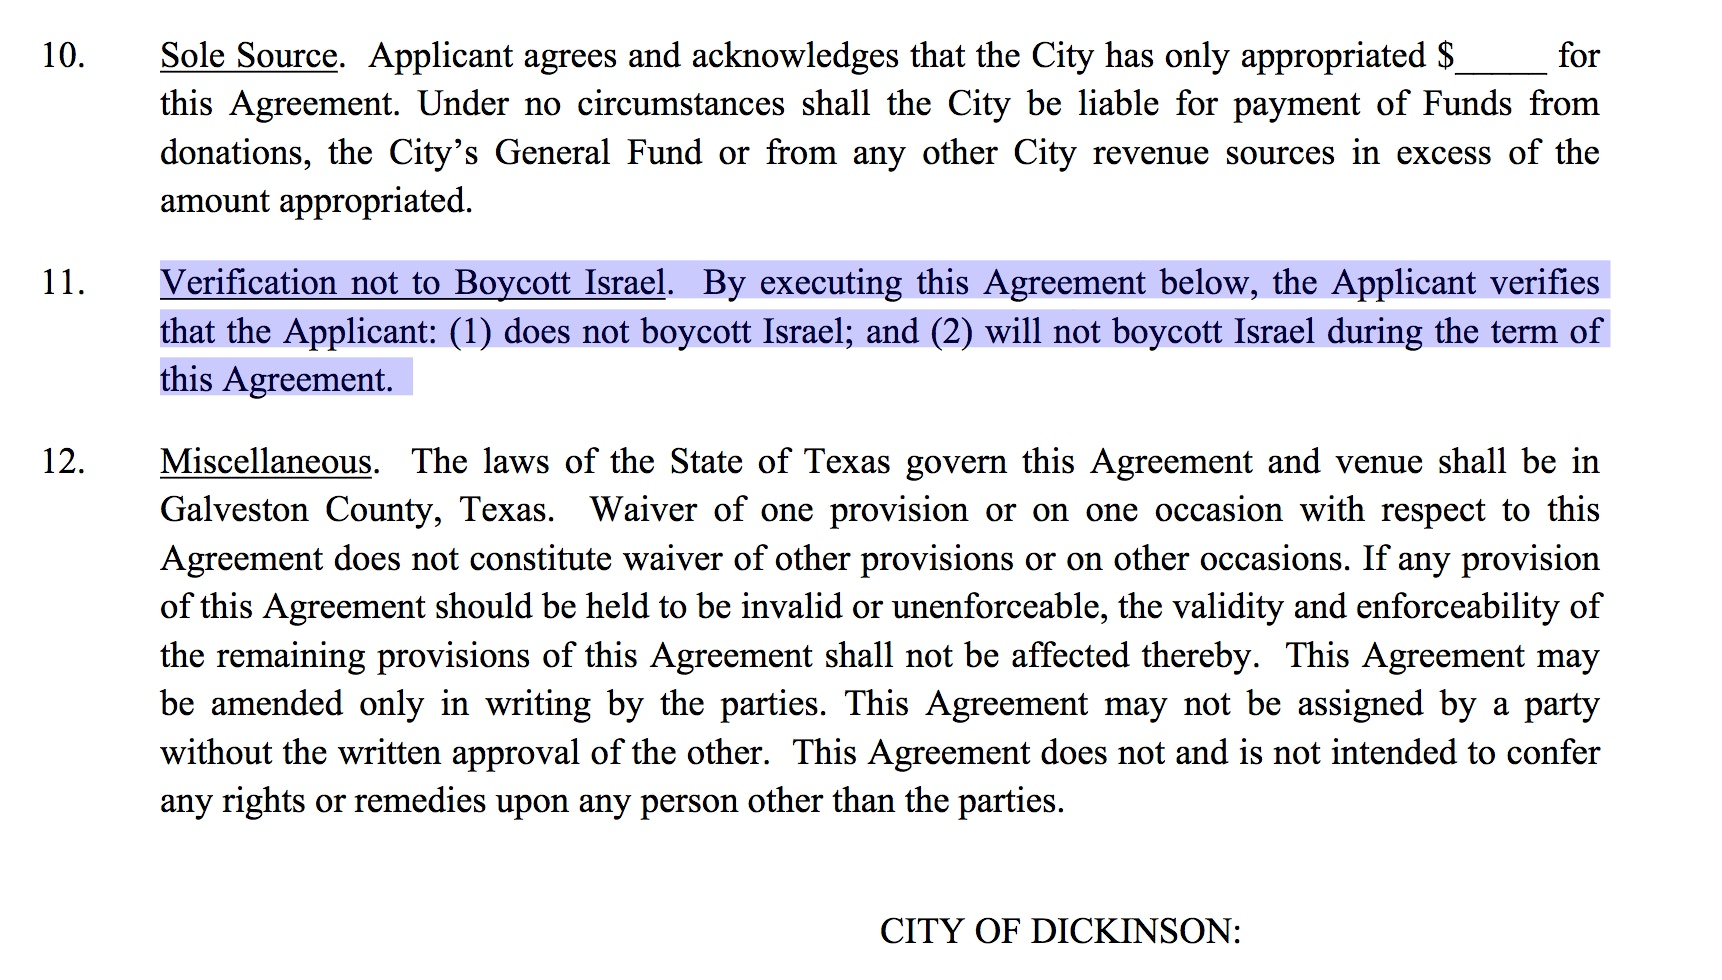 Texas Contractors Seeking Hurricane Funds Cant Boycott Israel